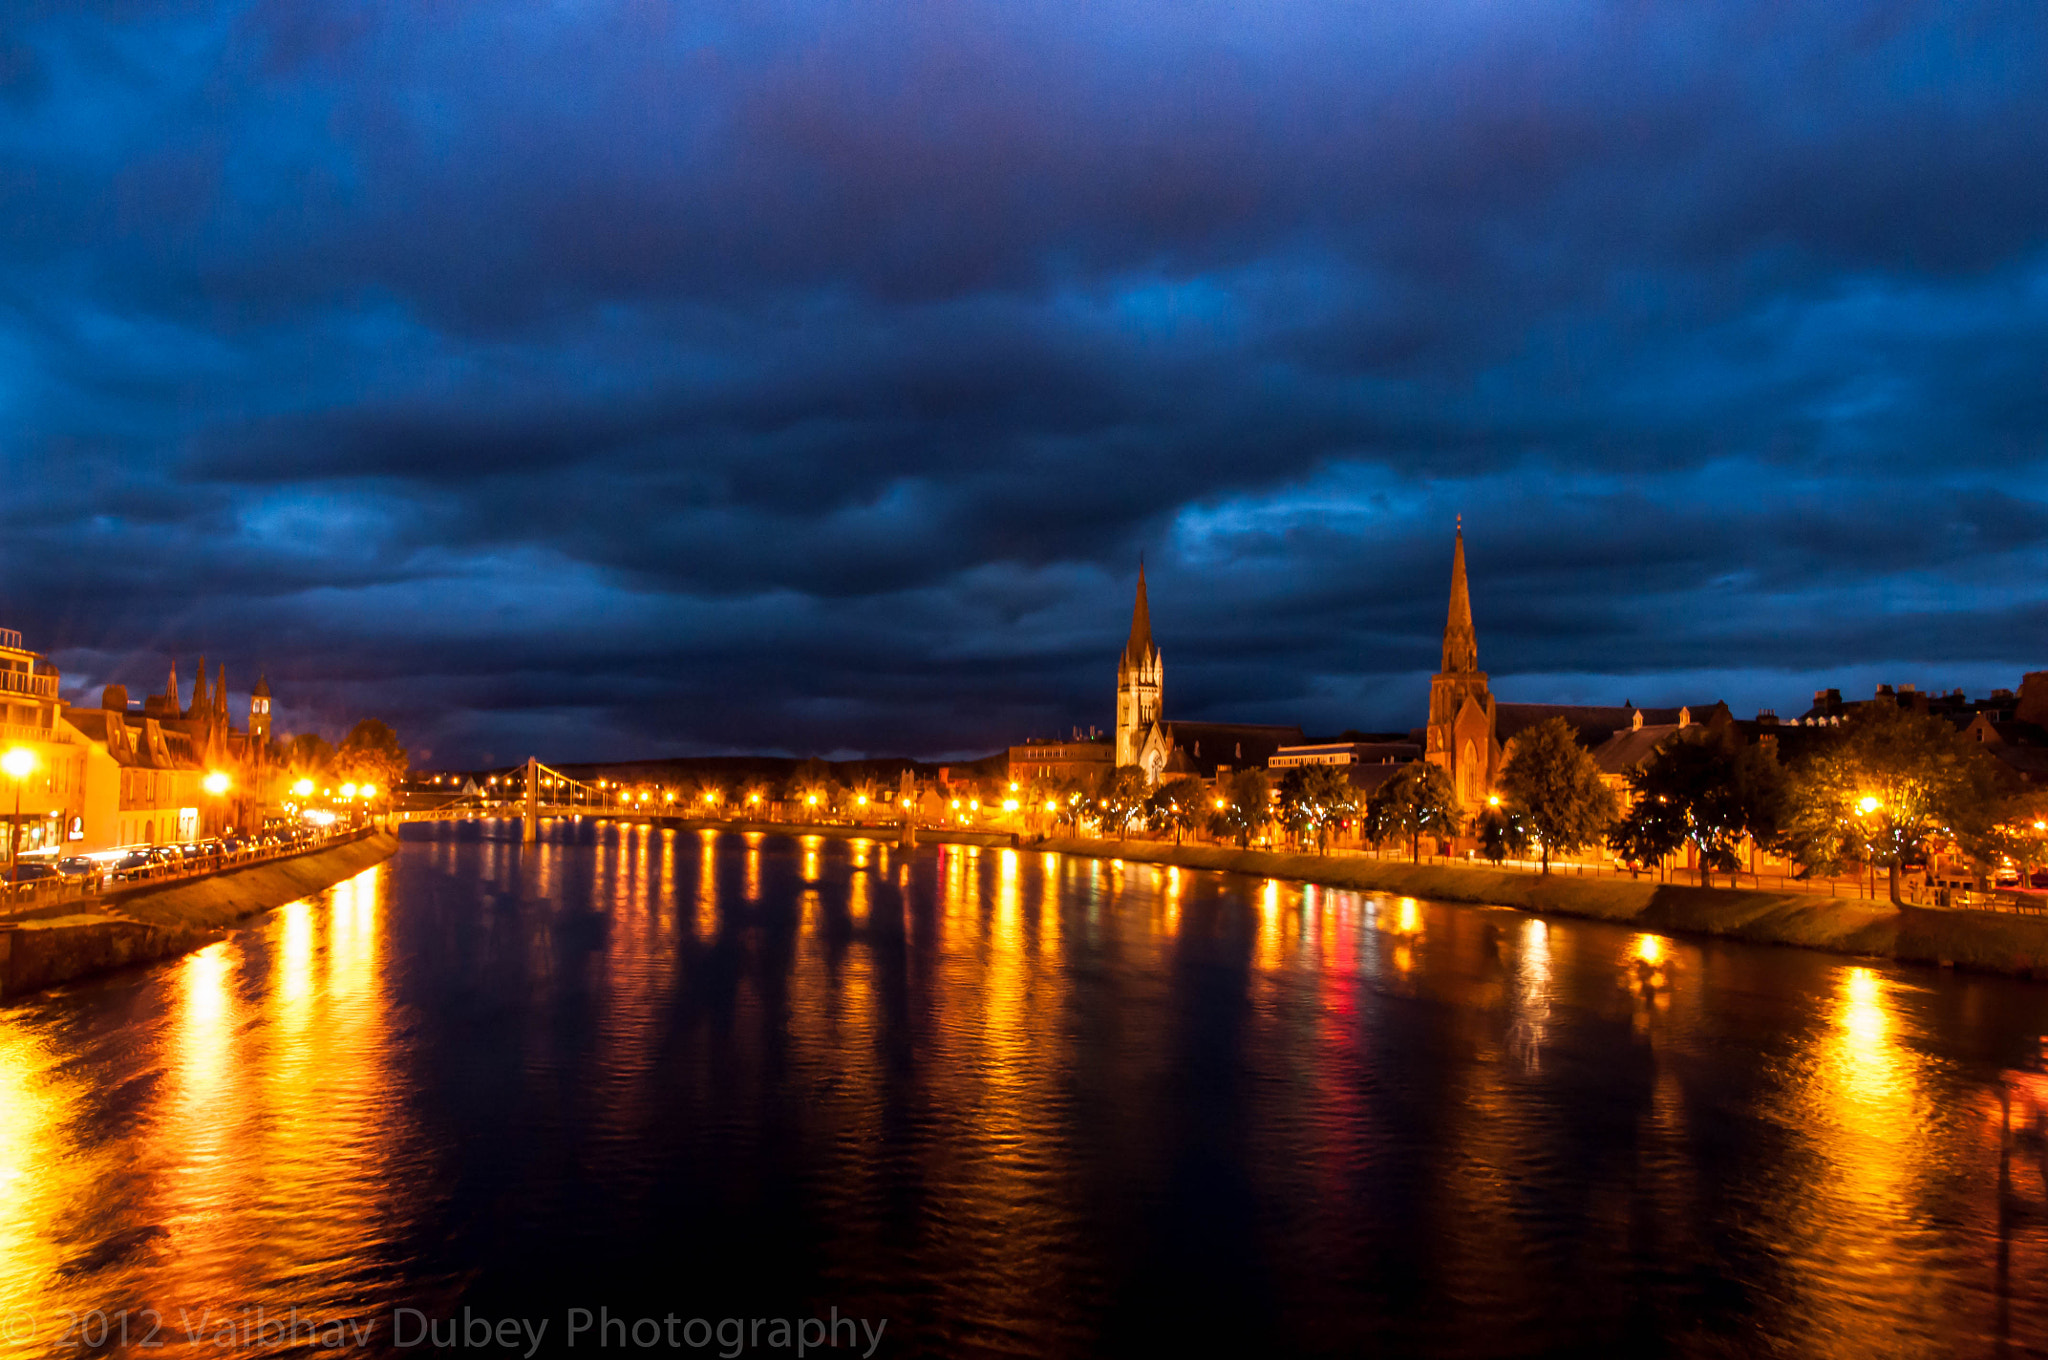 Photograph Lightings in Inverness by Vaibhav Dubey on 500px